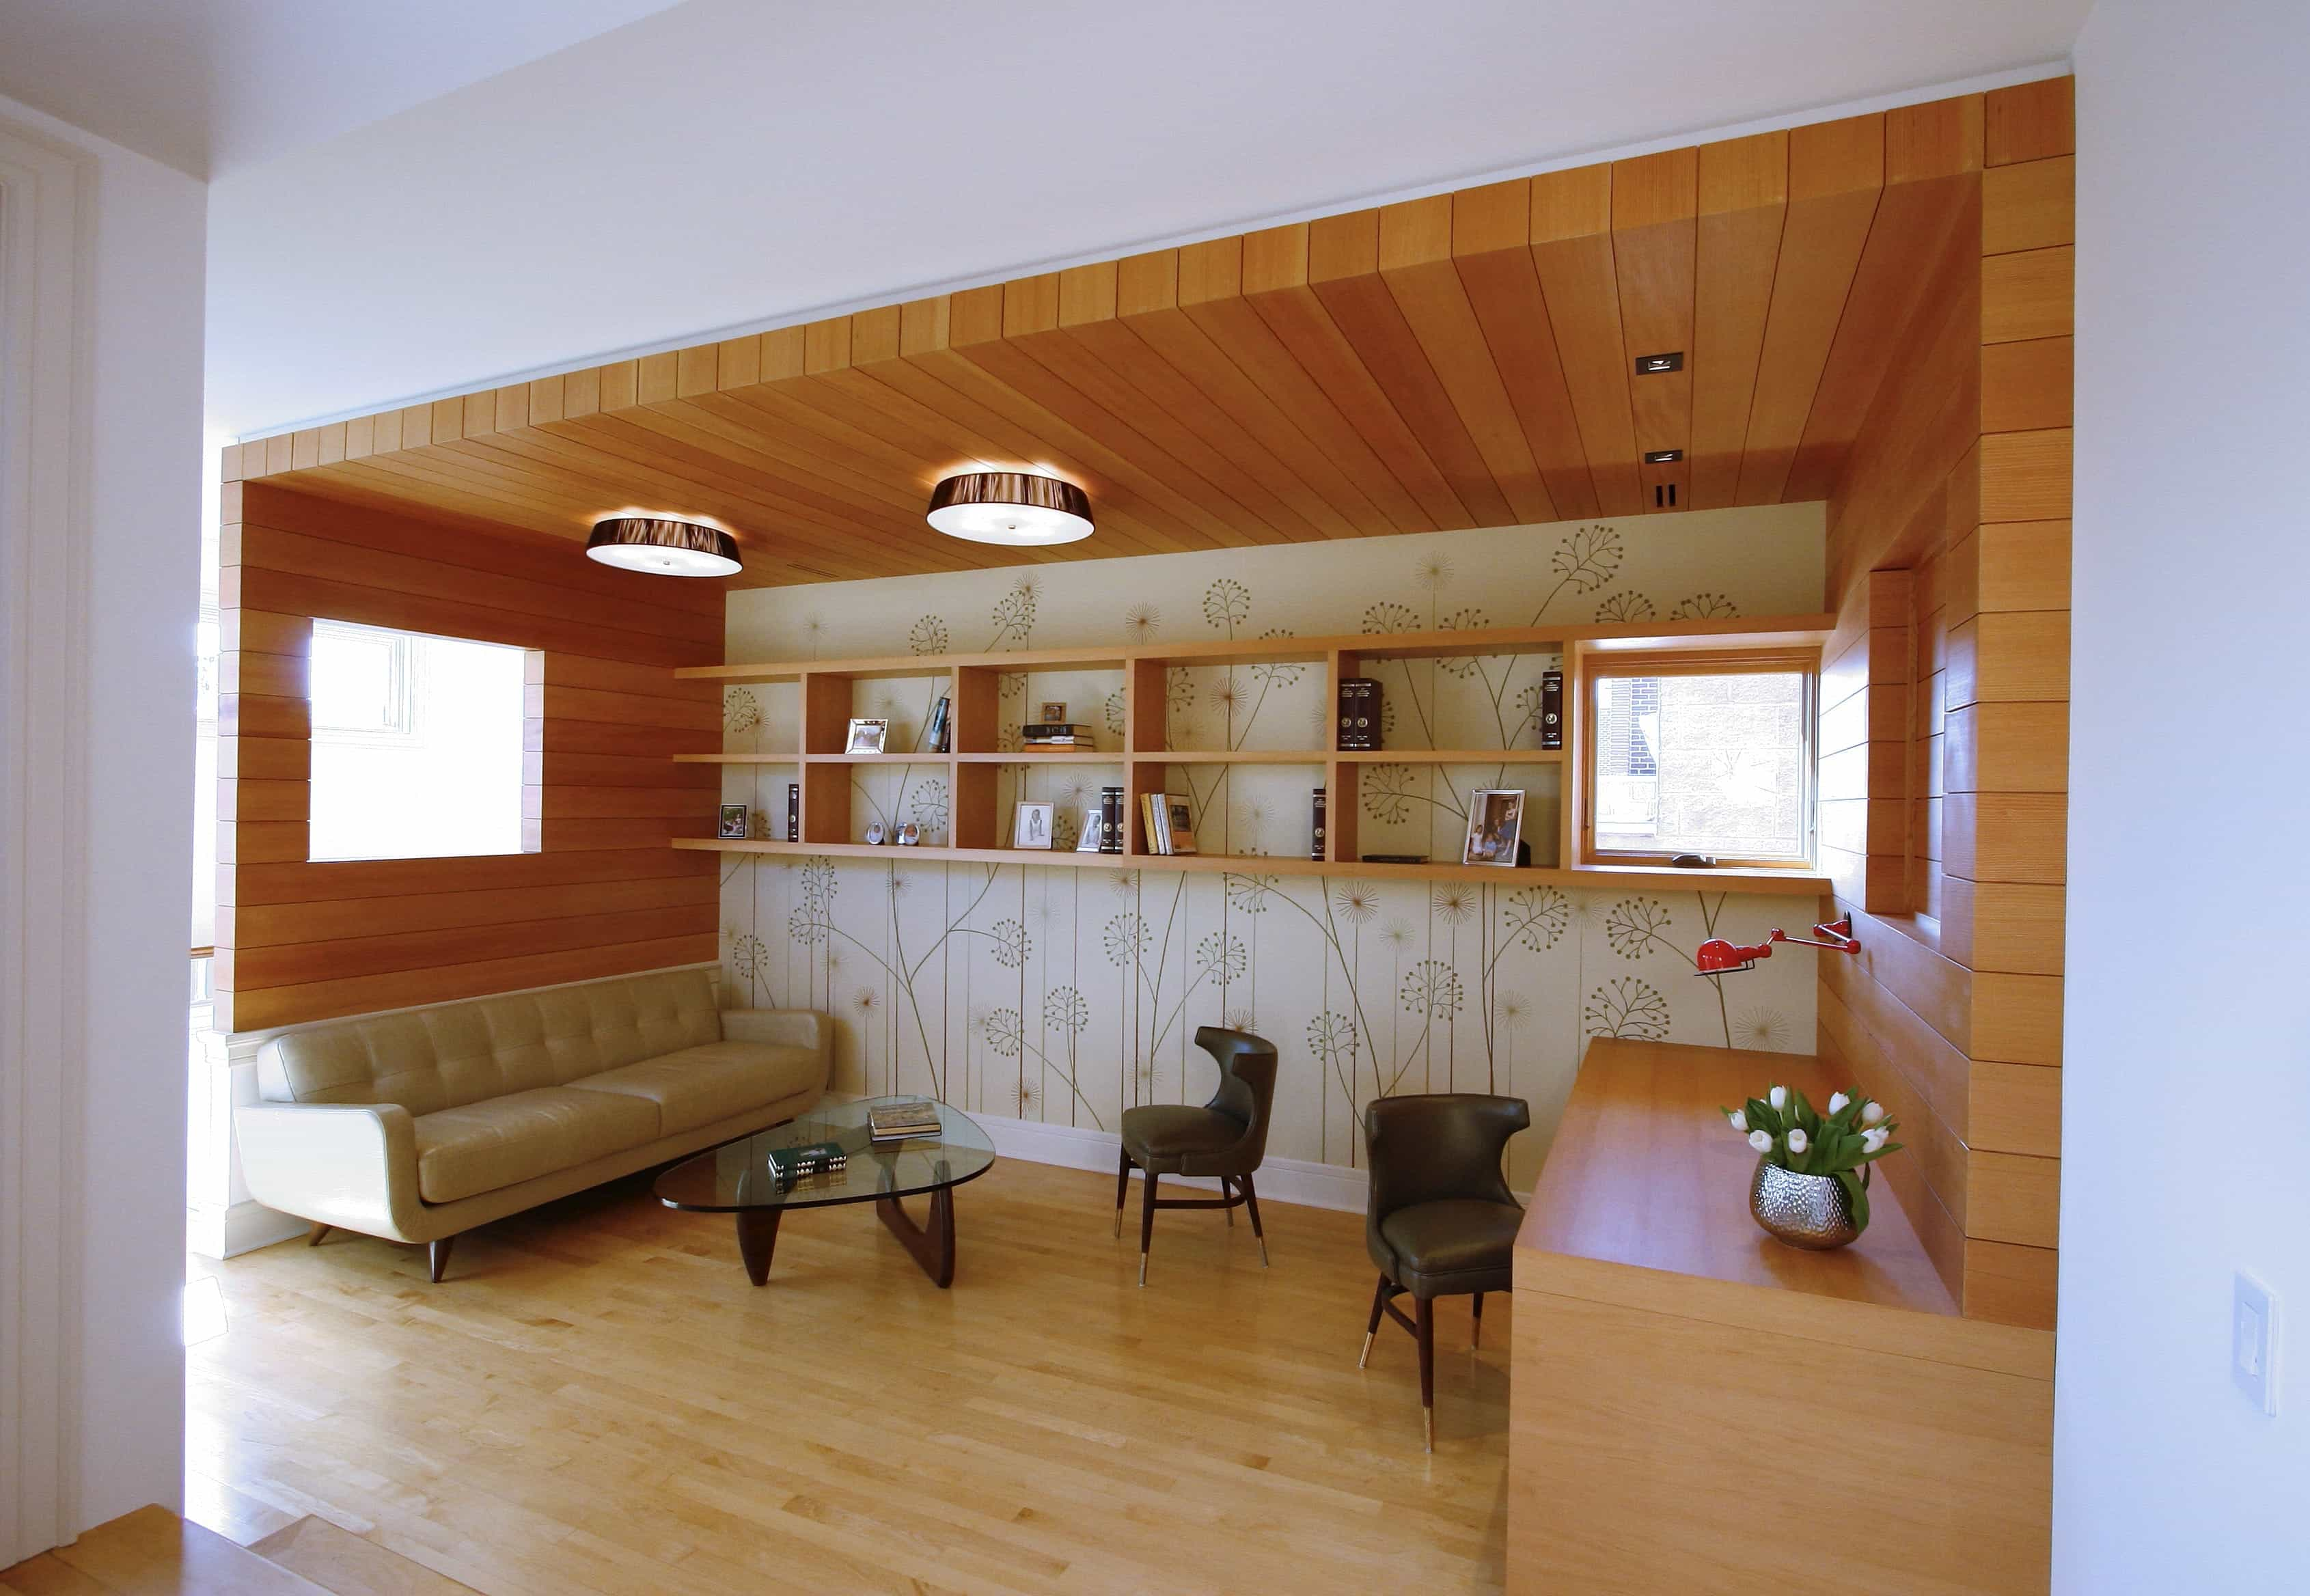 Cozy Home Office And Library With Contemporary Flat Wood Paneling Cabinets  (Image 5 Of 10